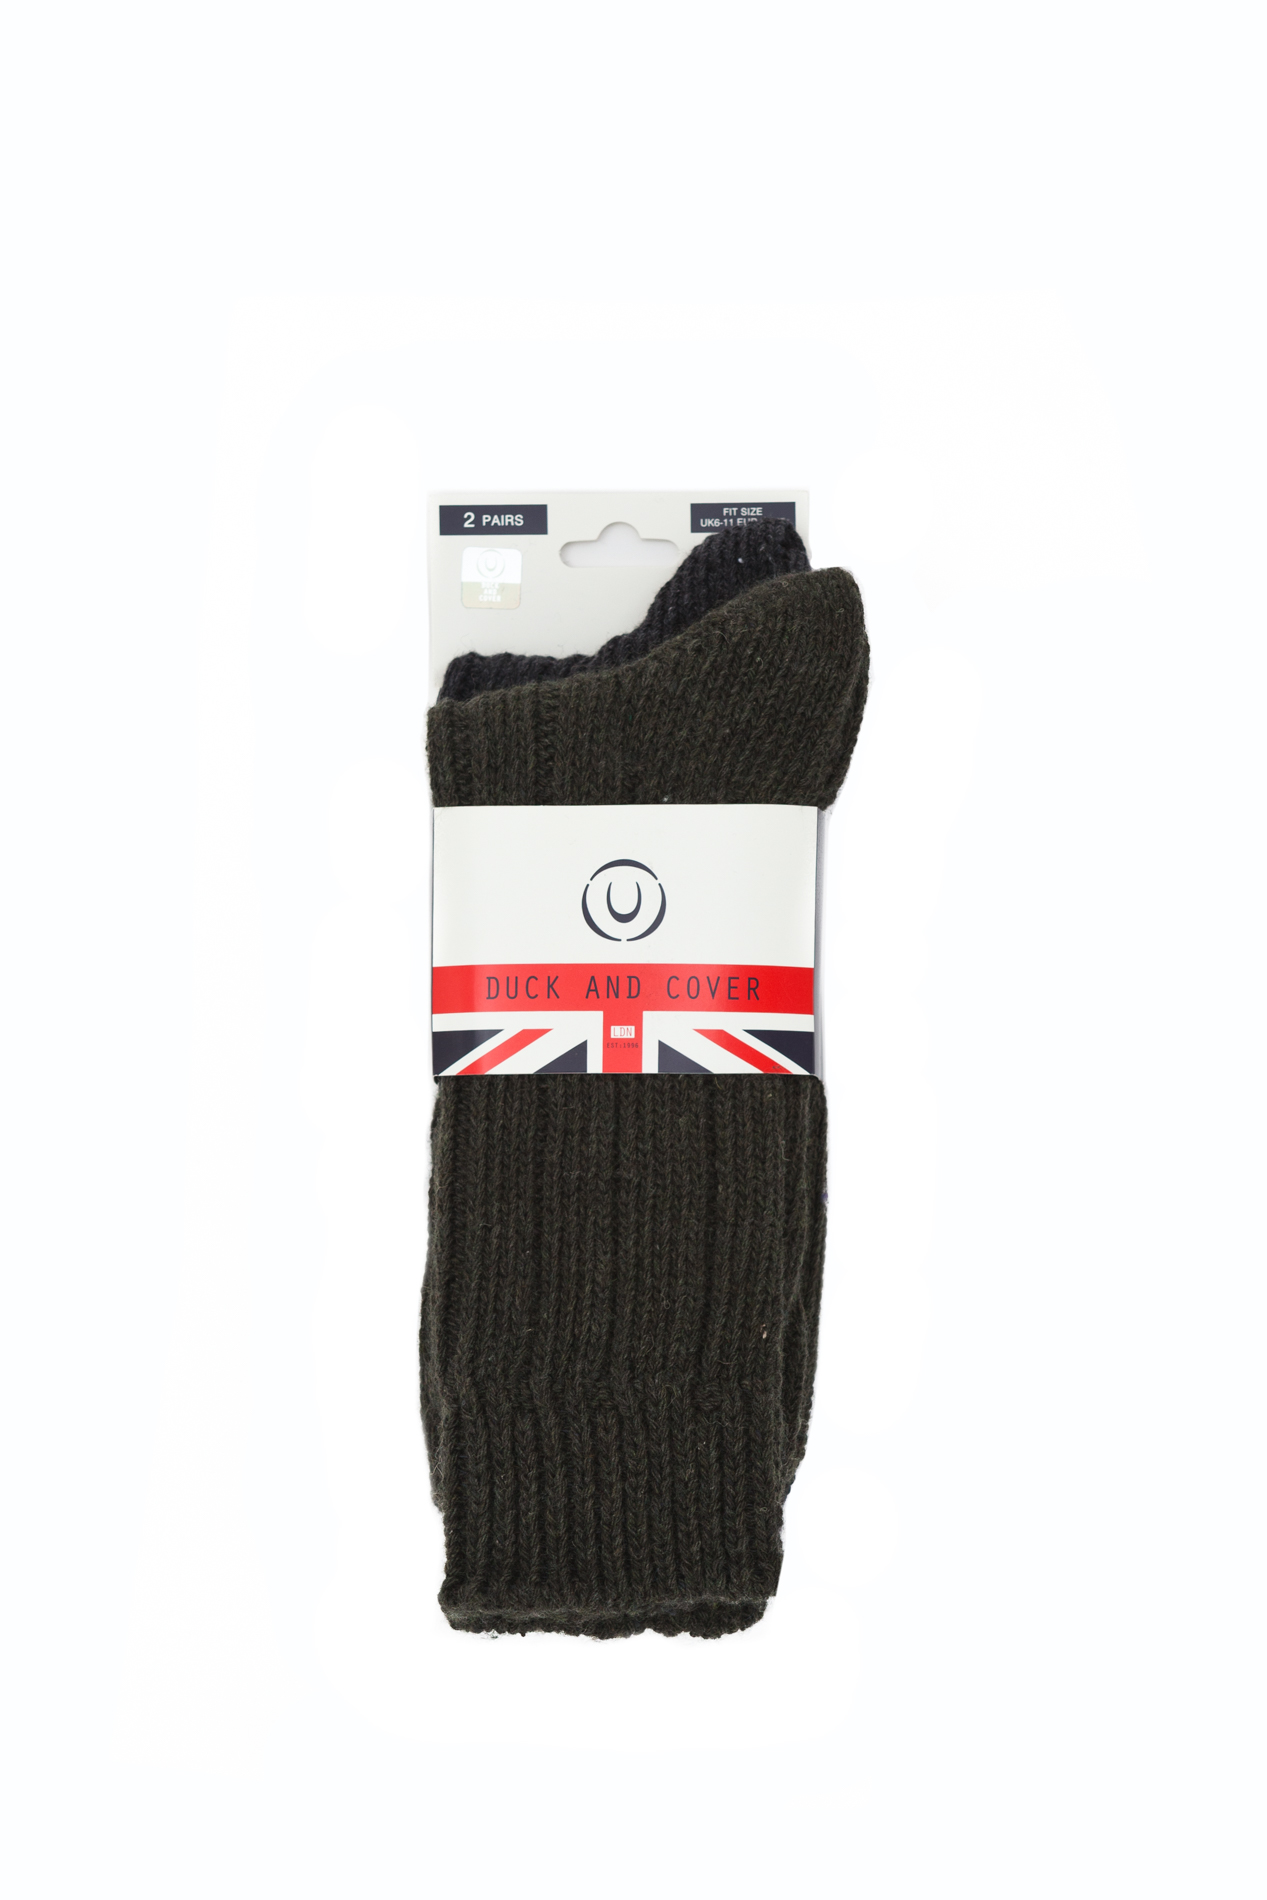 DUCK AND COVER MOSBY Socks 2 colors 2 Pairs for men Unique Size DC2Y111803BA2STK GREEN MARL/NAVY